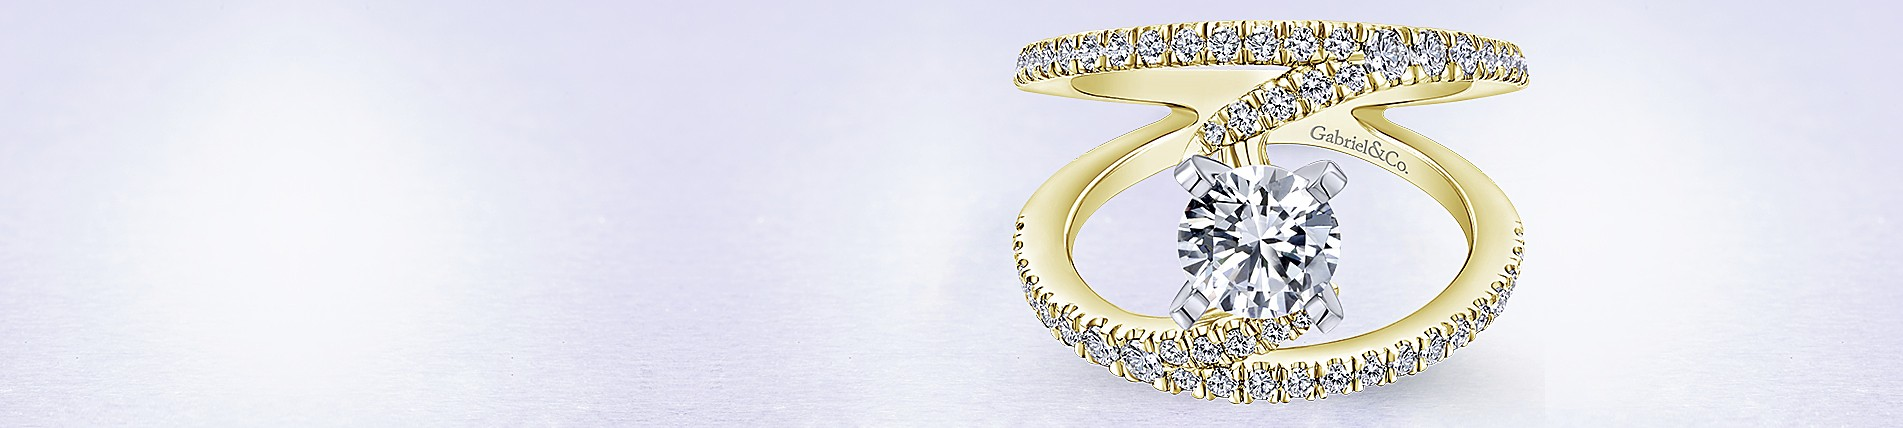 yellow diamond beaverbrooks context engagement ring large gold rings jewellery cluster